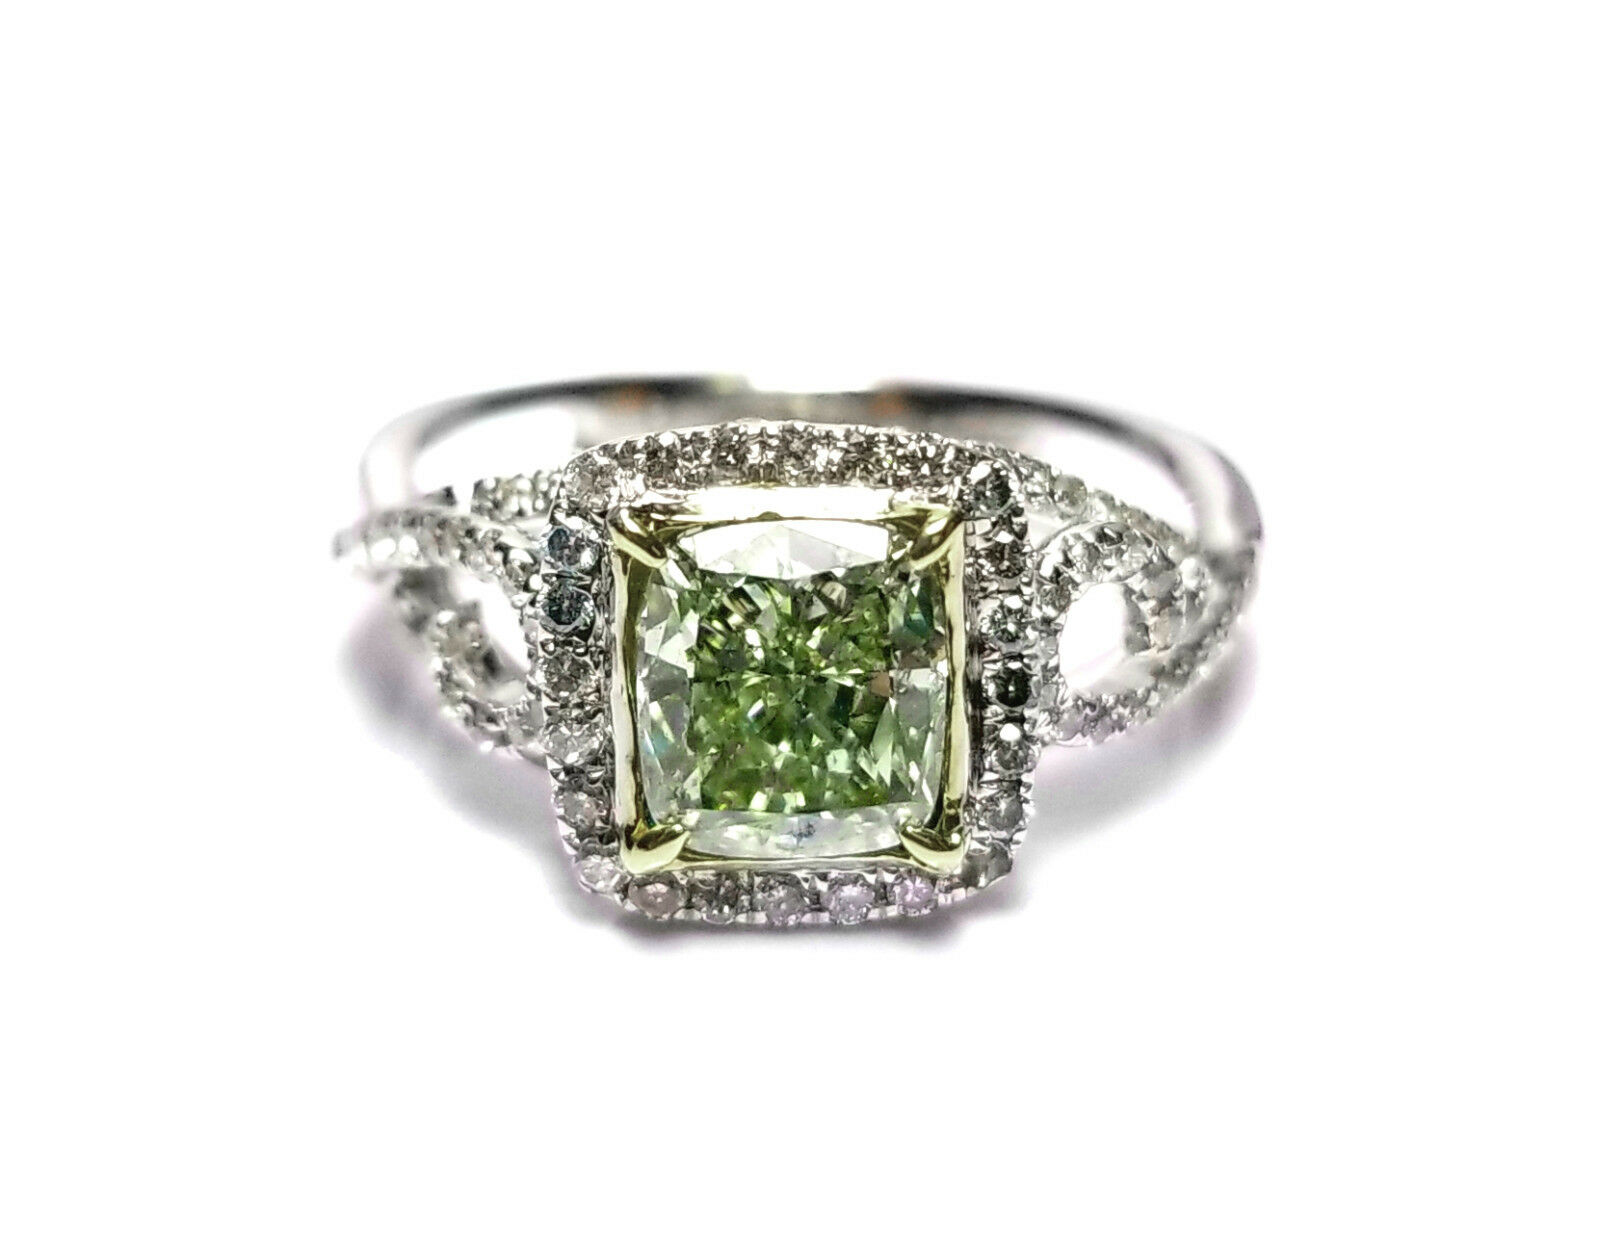 1.73ct Natural Fancy Green Diamond Engagement Ring GIA 18K White Gold Cushion 3